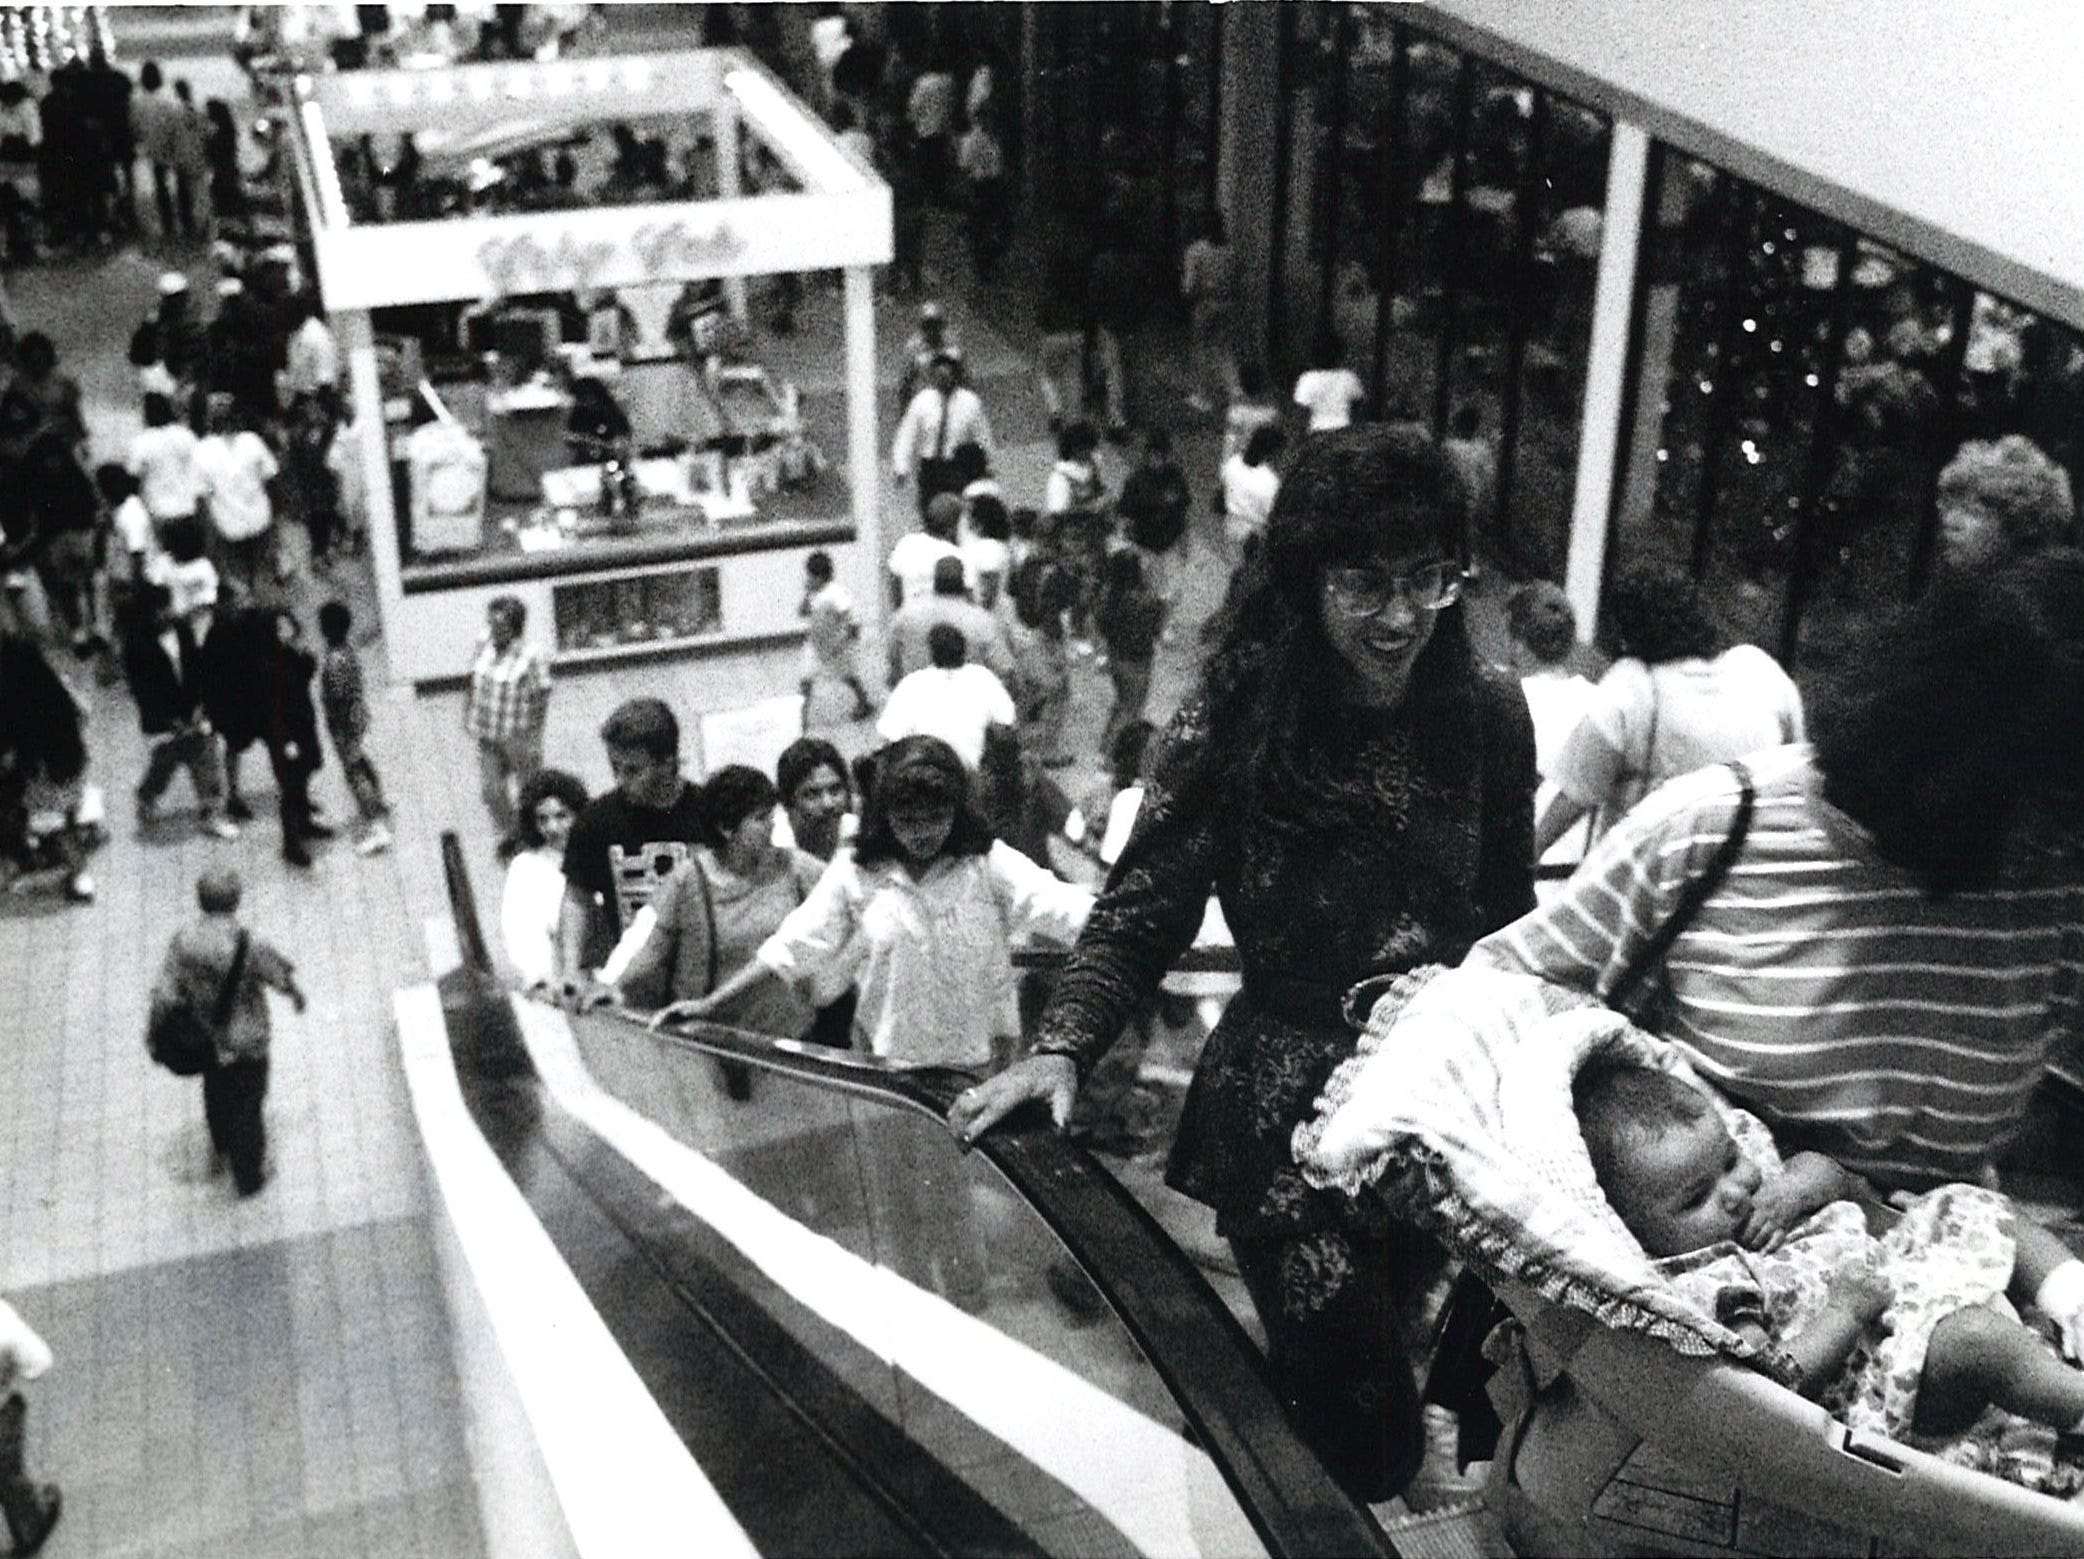 Patrons of Padre Staples Mall crowd the escalators during the first official day of the Christmas shopping season in 1990.